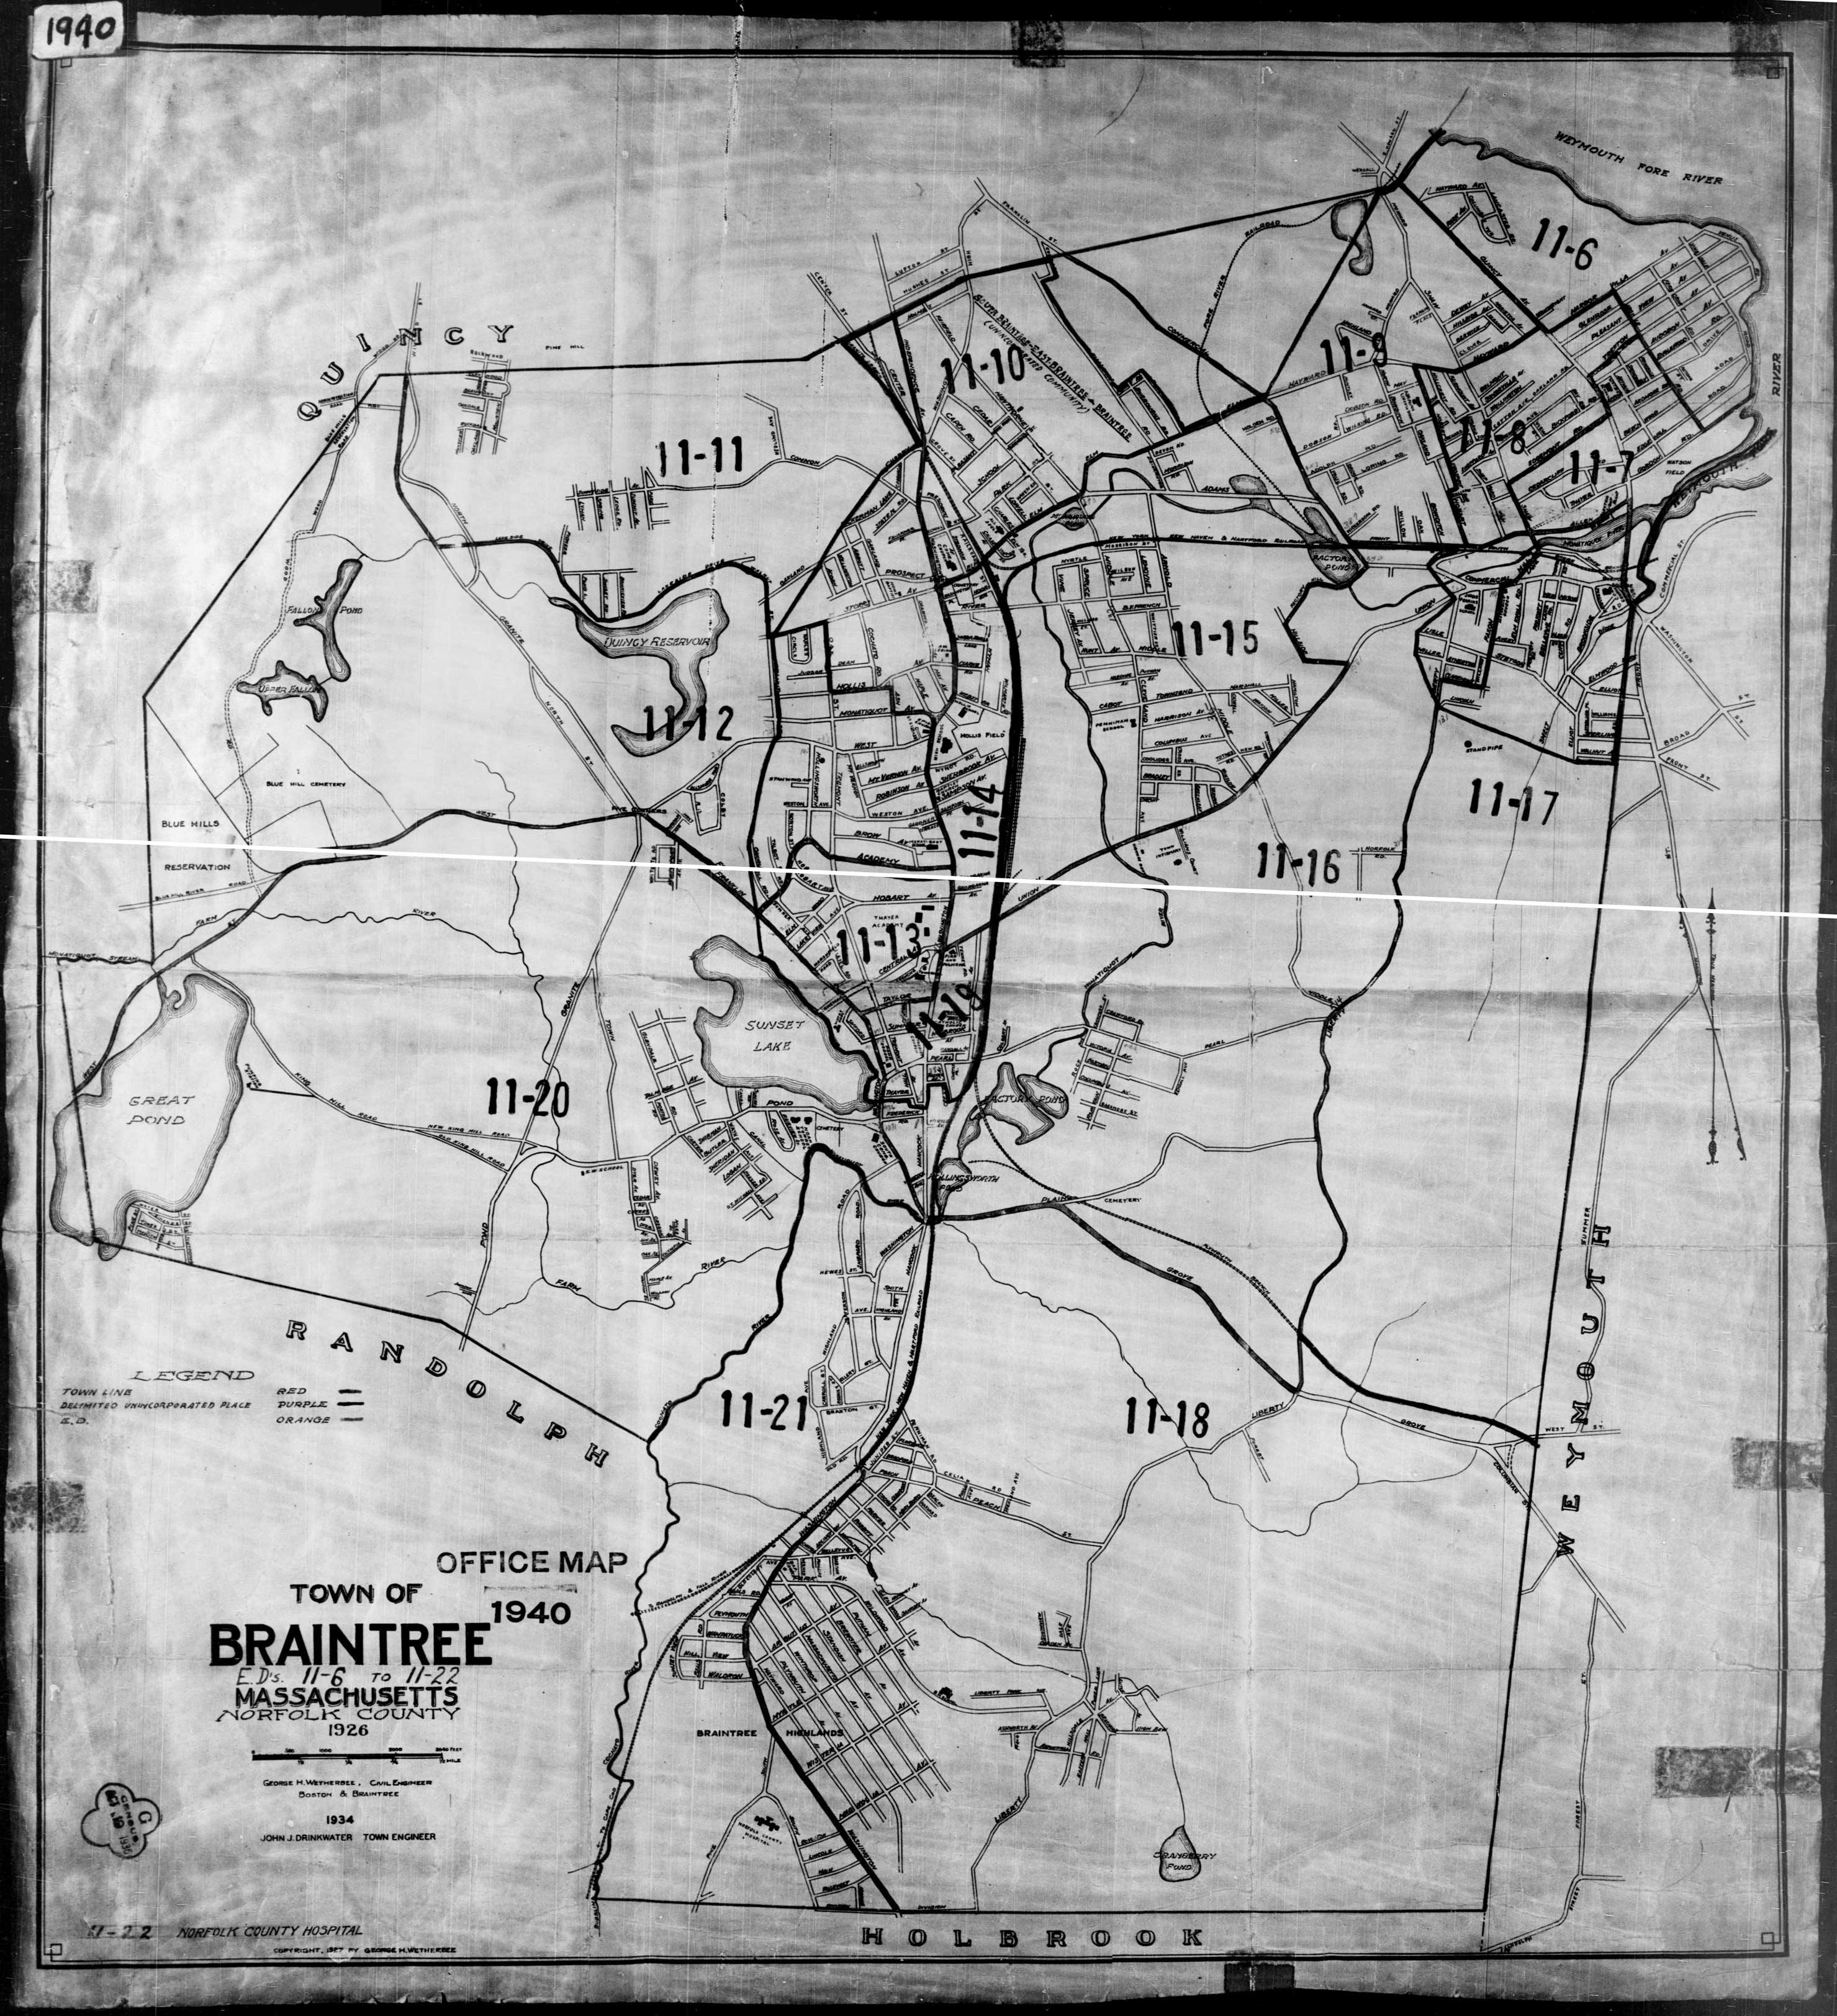 1940 Census Maps - Norfolk County MA on